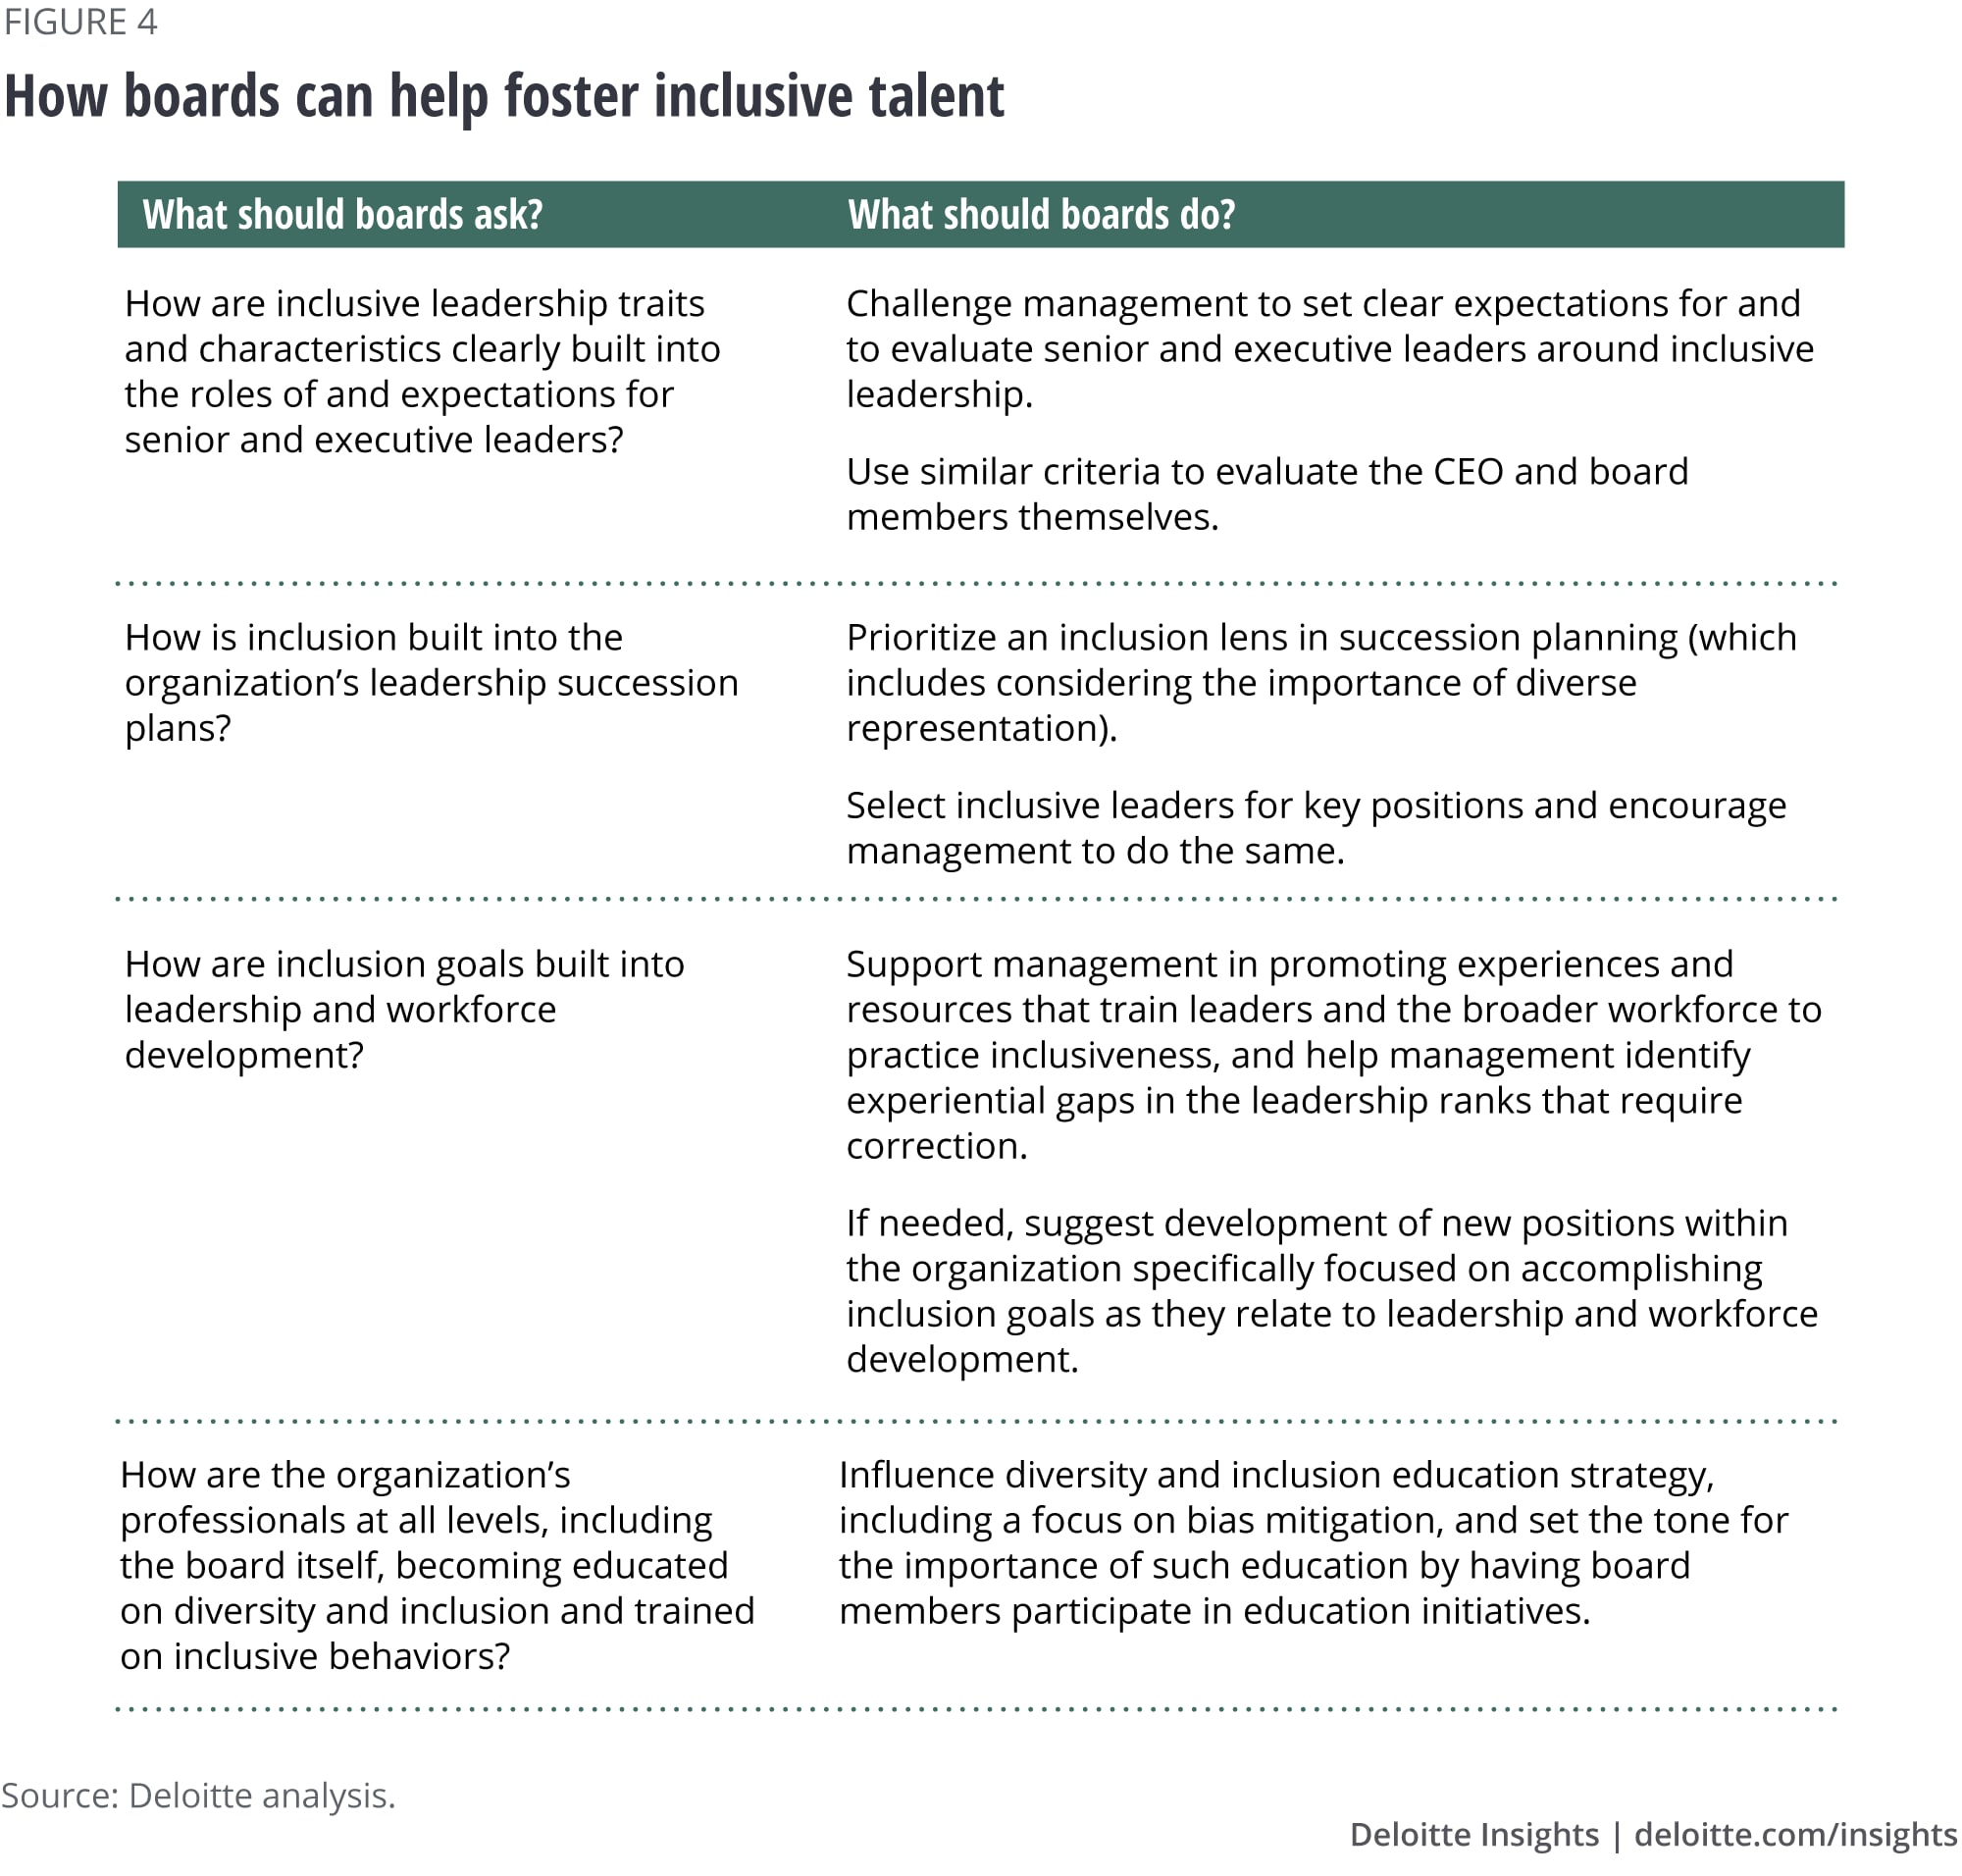 How boards can help foster inclusive talent